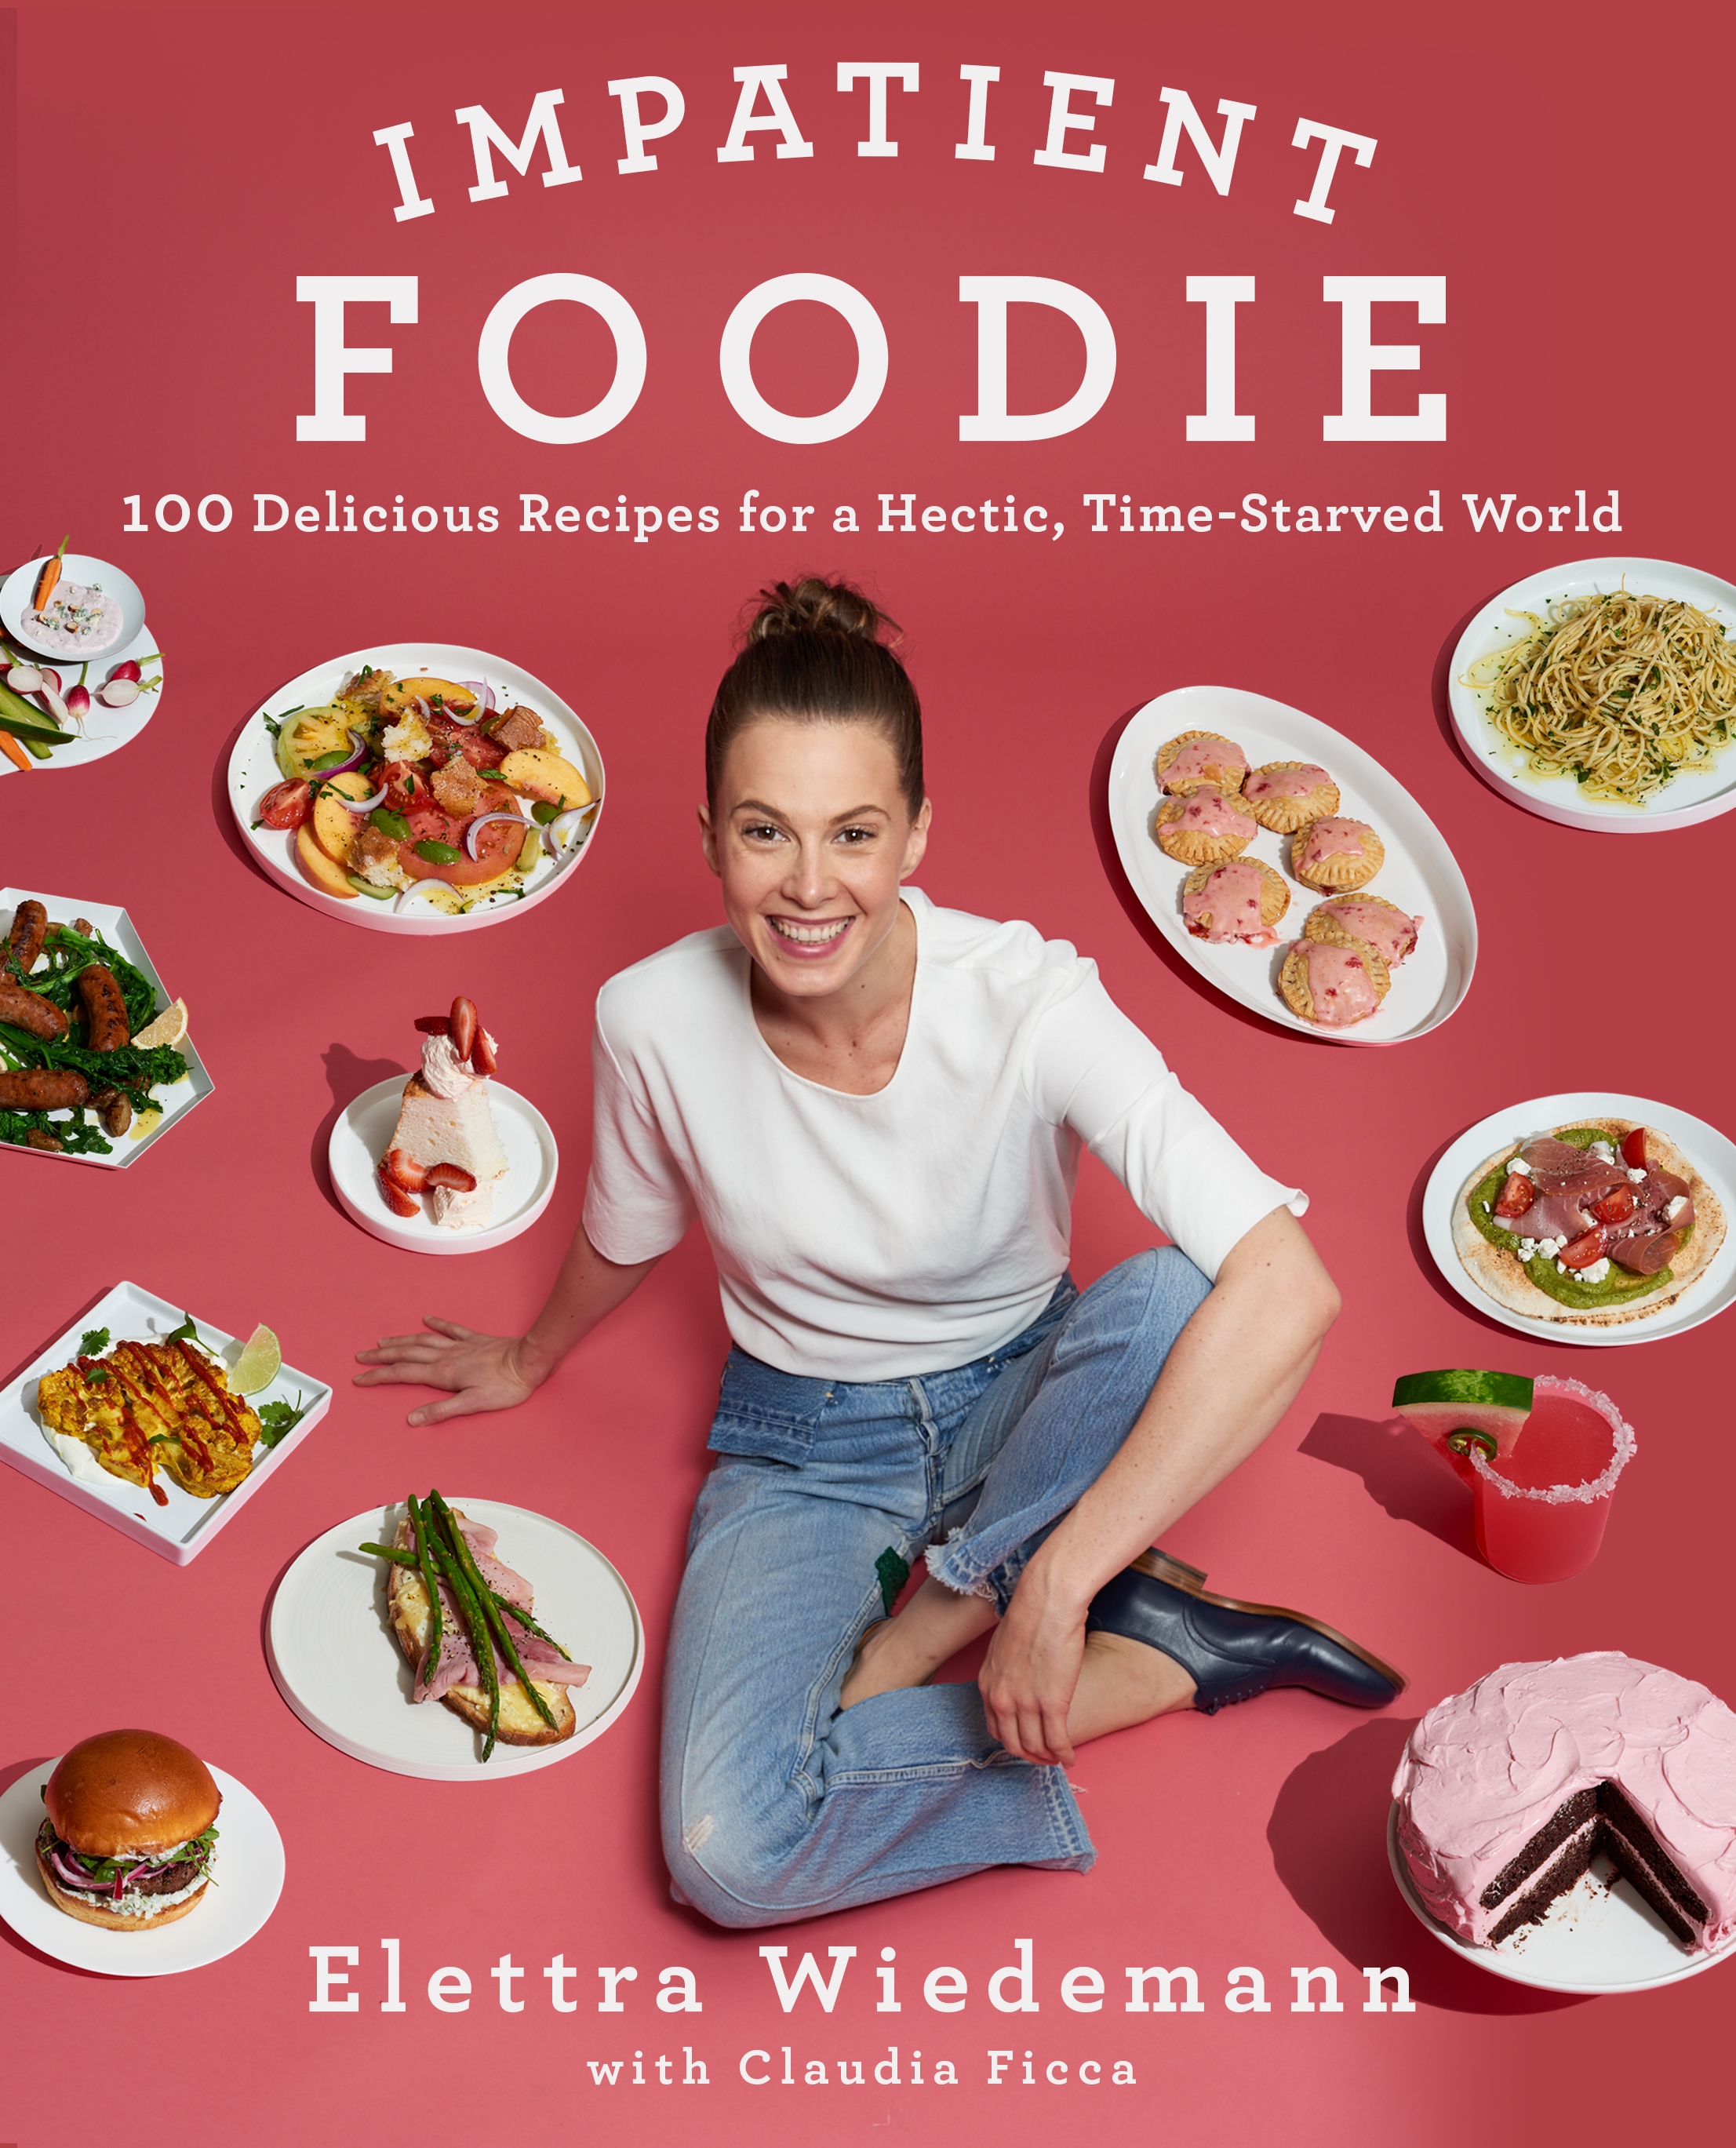 Book Launch: Impatient Foodie by Elettra Wiedemann — in conversation w/ Kerry Diamond of Cherry Bombe